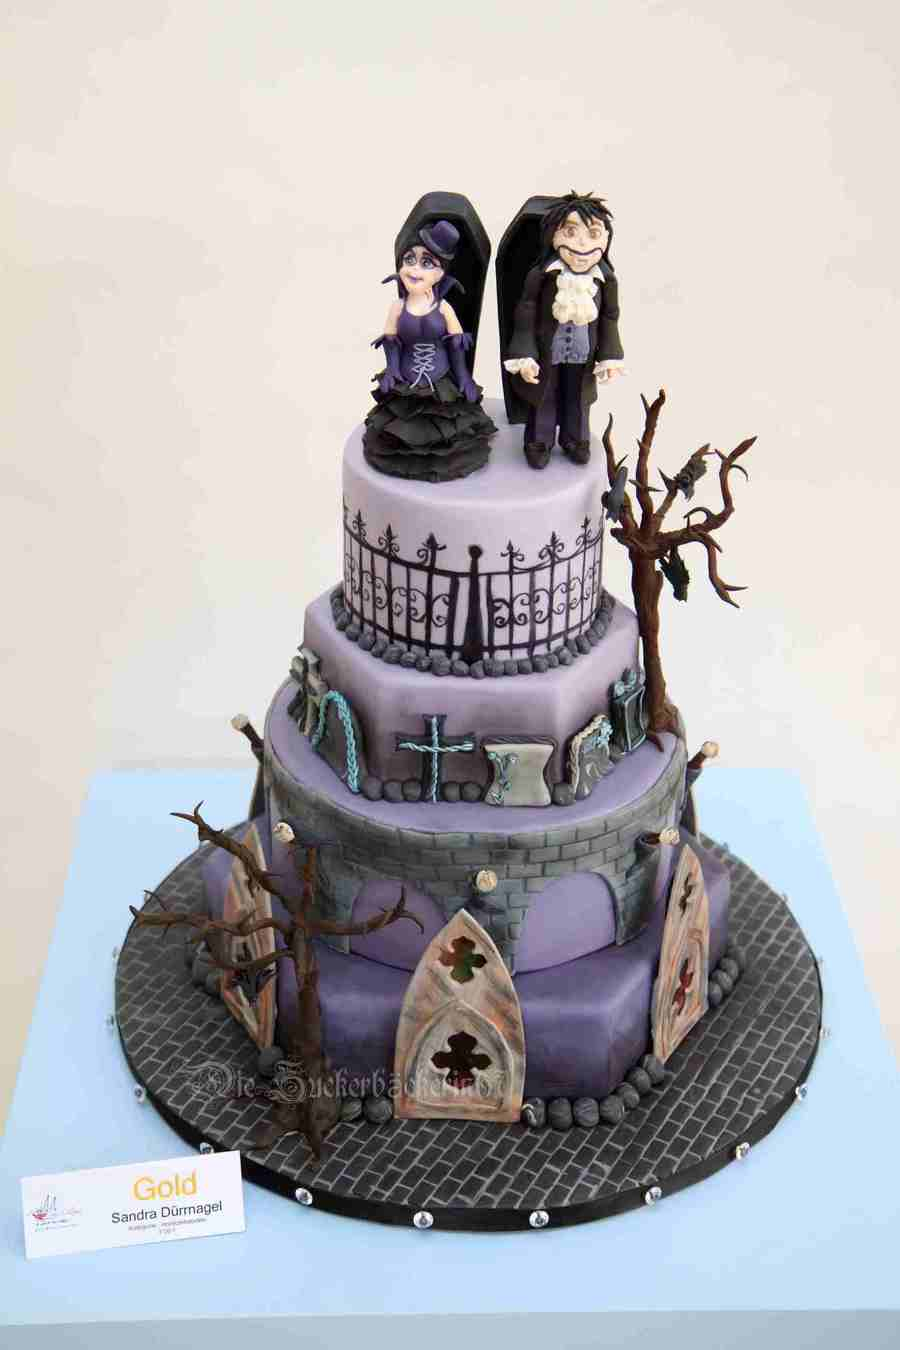 Cake Artist Koln : My Vampire Gothic Wedding Cake I Won On The Cake Cologne A ...